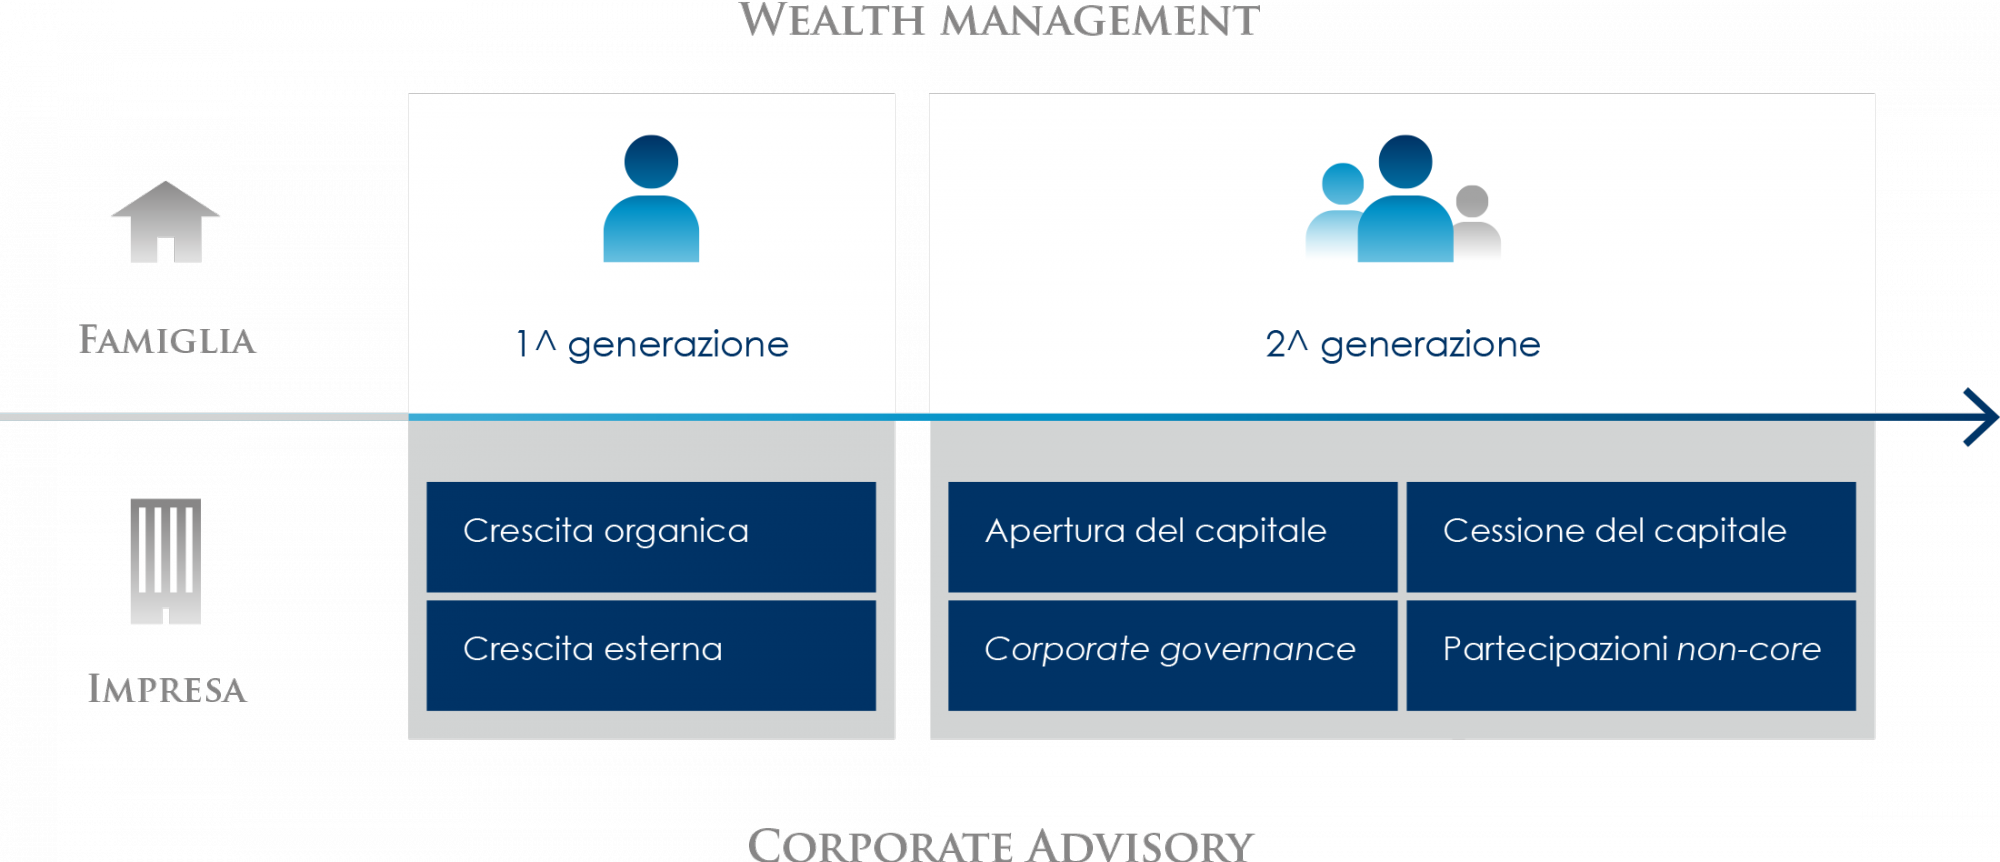 Servizi di Wealth Management - Corporate Advisory - Famiglia e Impresa